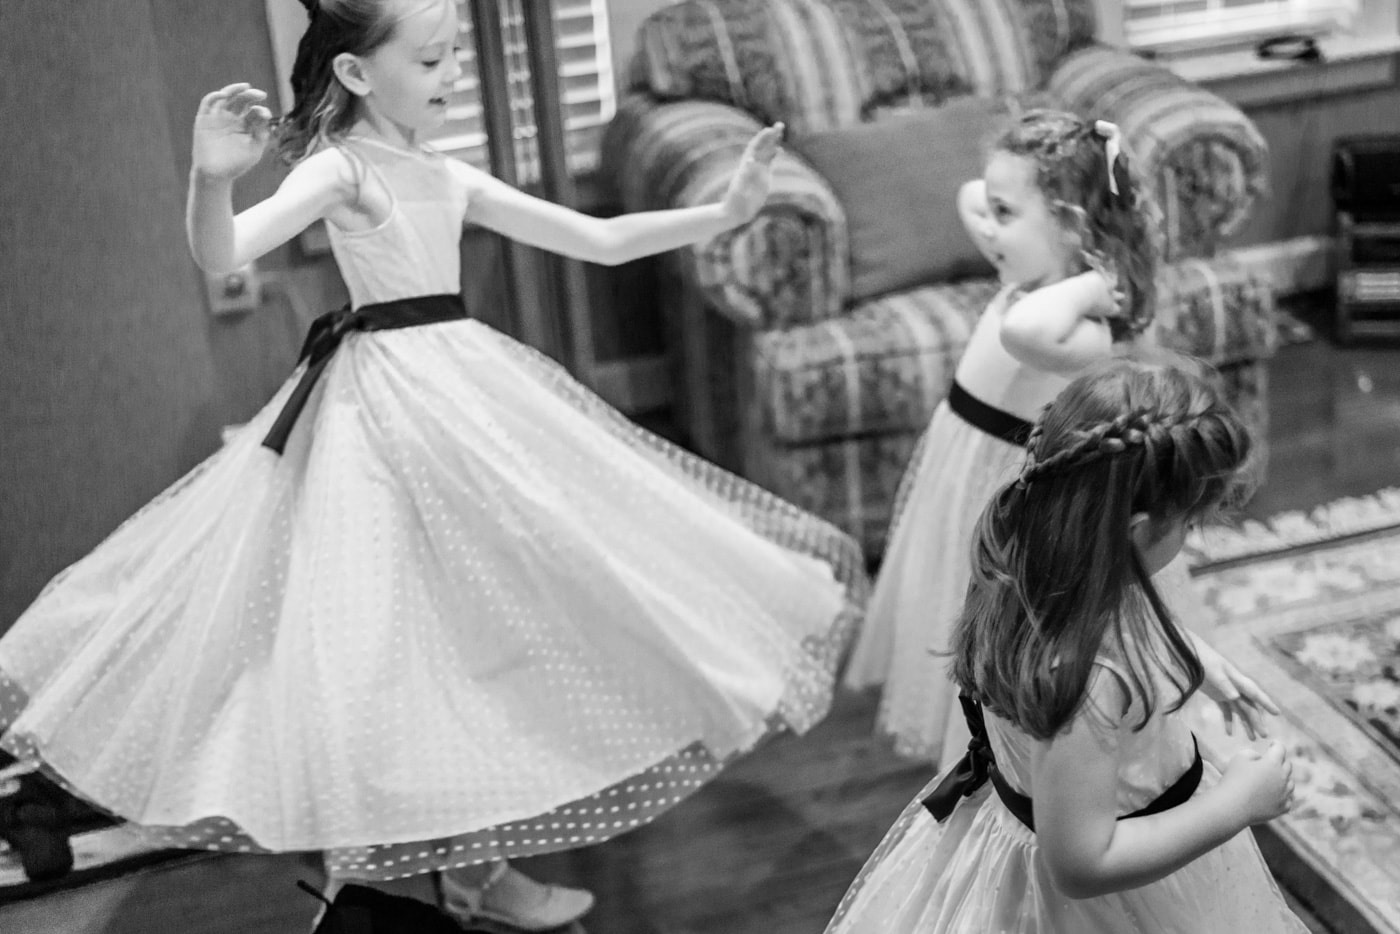 Flower girls twirl in their dresses before the ceremony at home in fairfax, virginia